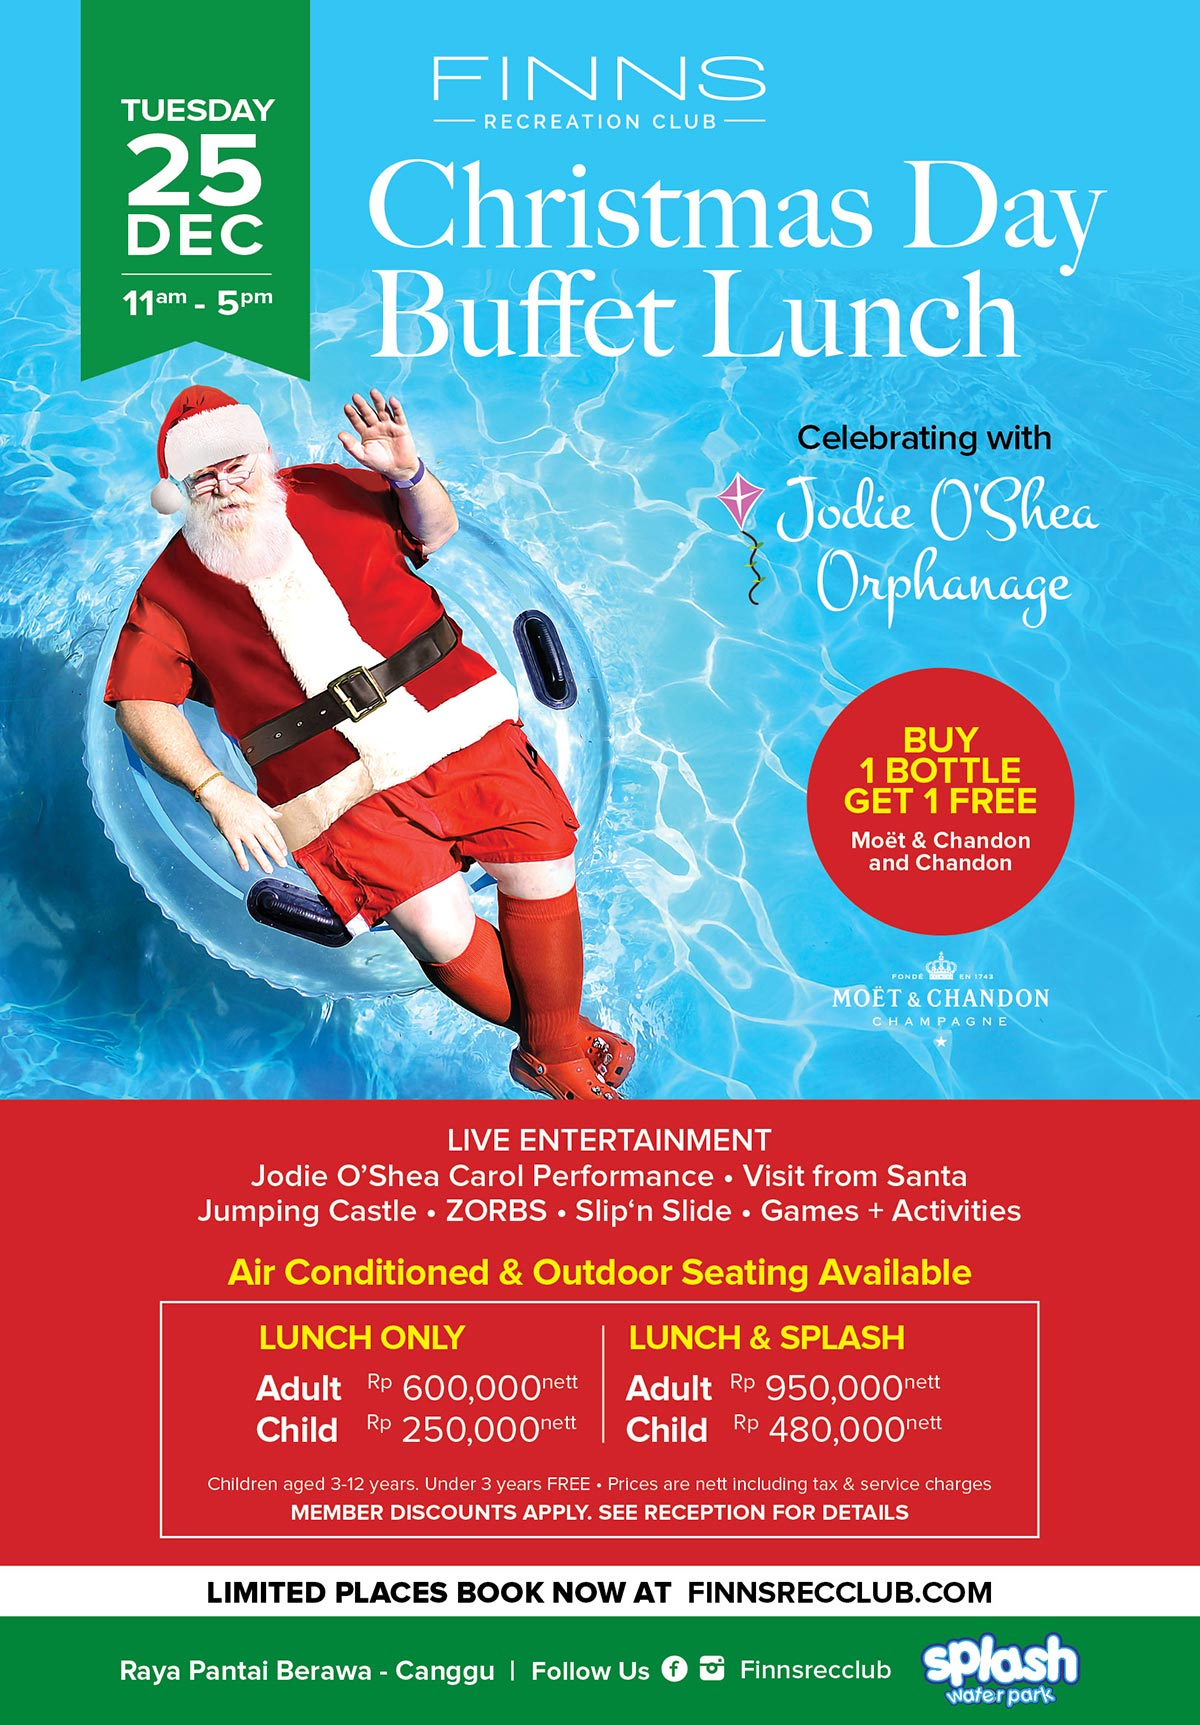 Christmas Day Buffet Lunch Finns Recreation Club 1 Get Free